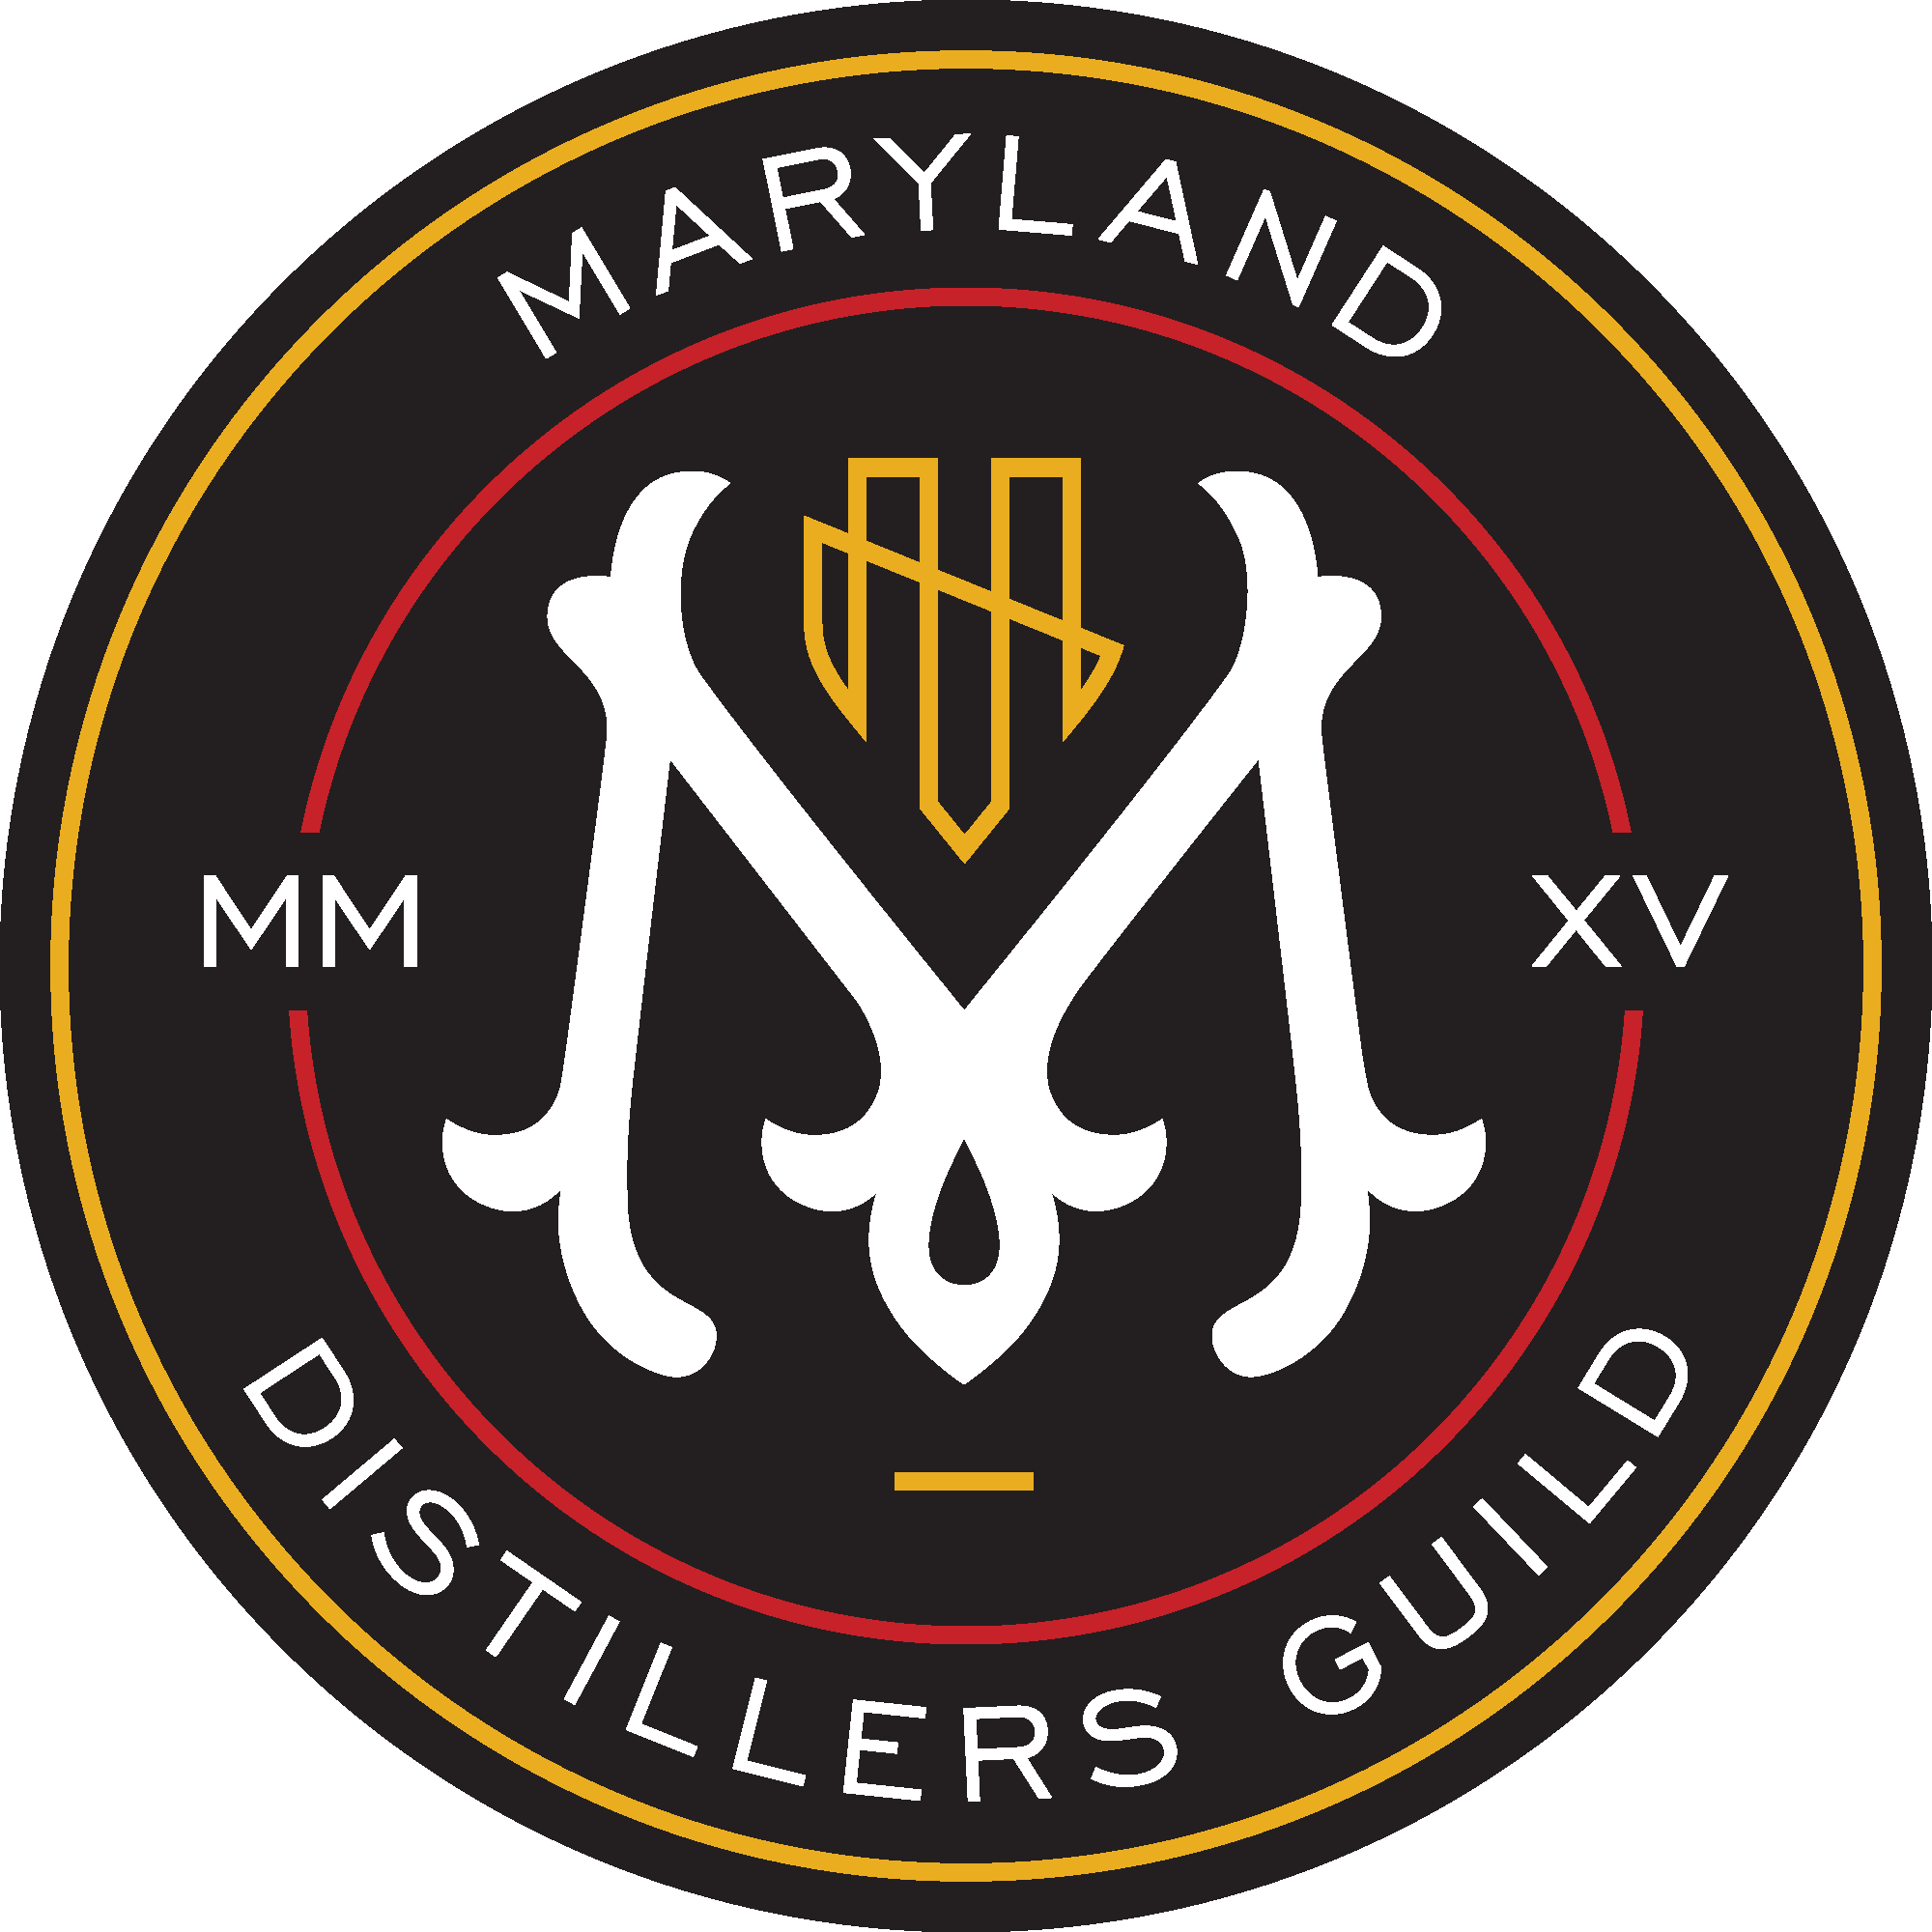 MD_Distillers_Guild.png